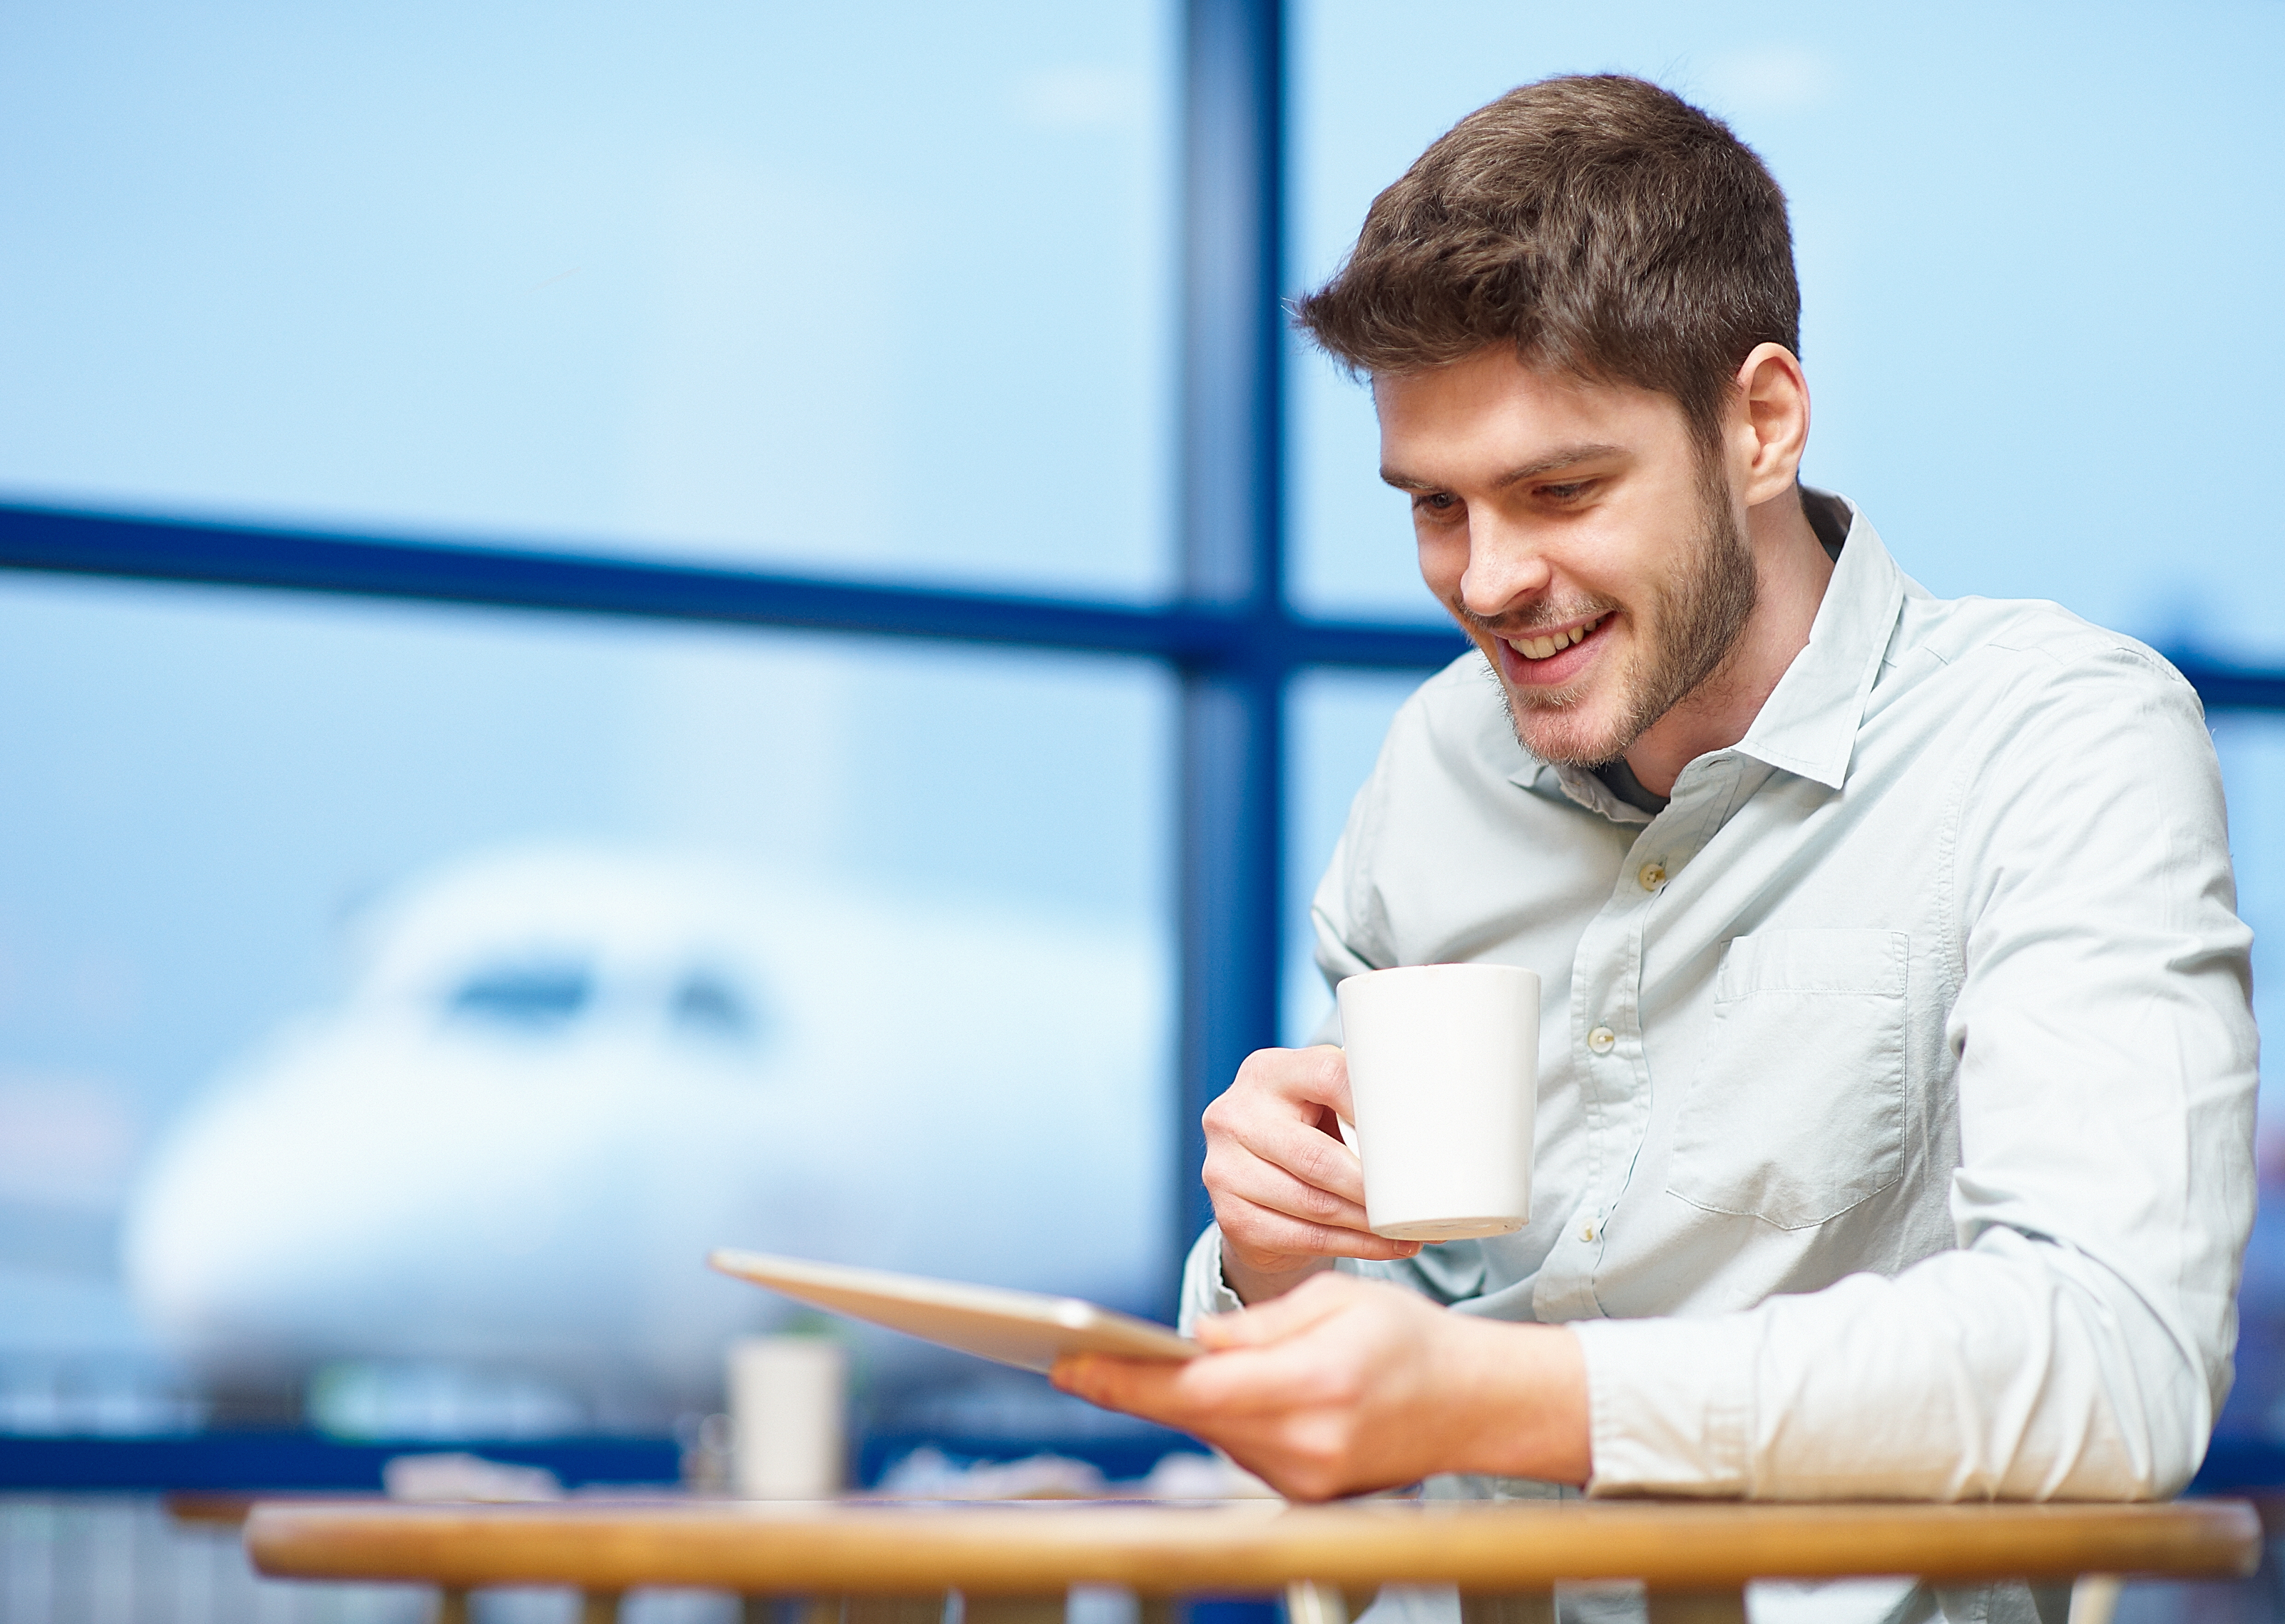 man-drinking-coffee-using-tablet-airport-4958 x 35